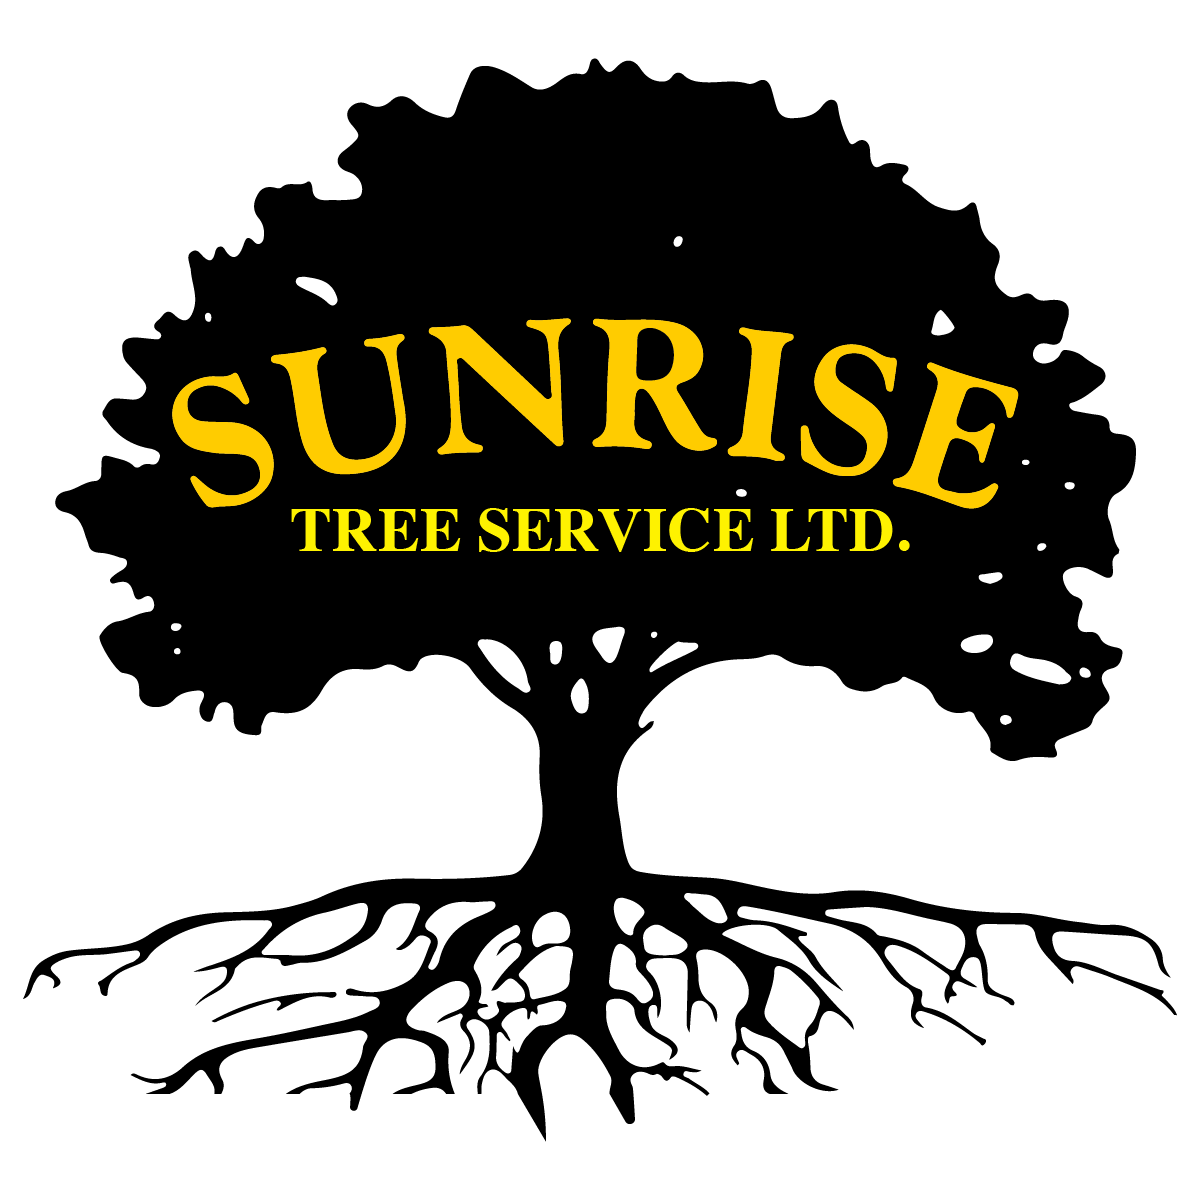 Sunrise_logo-BASE-01